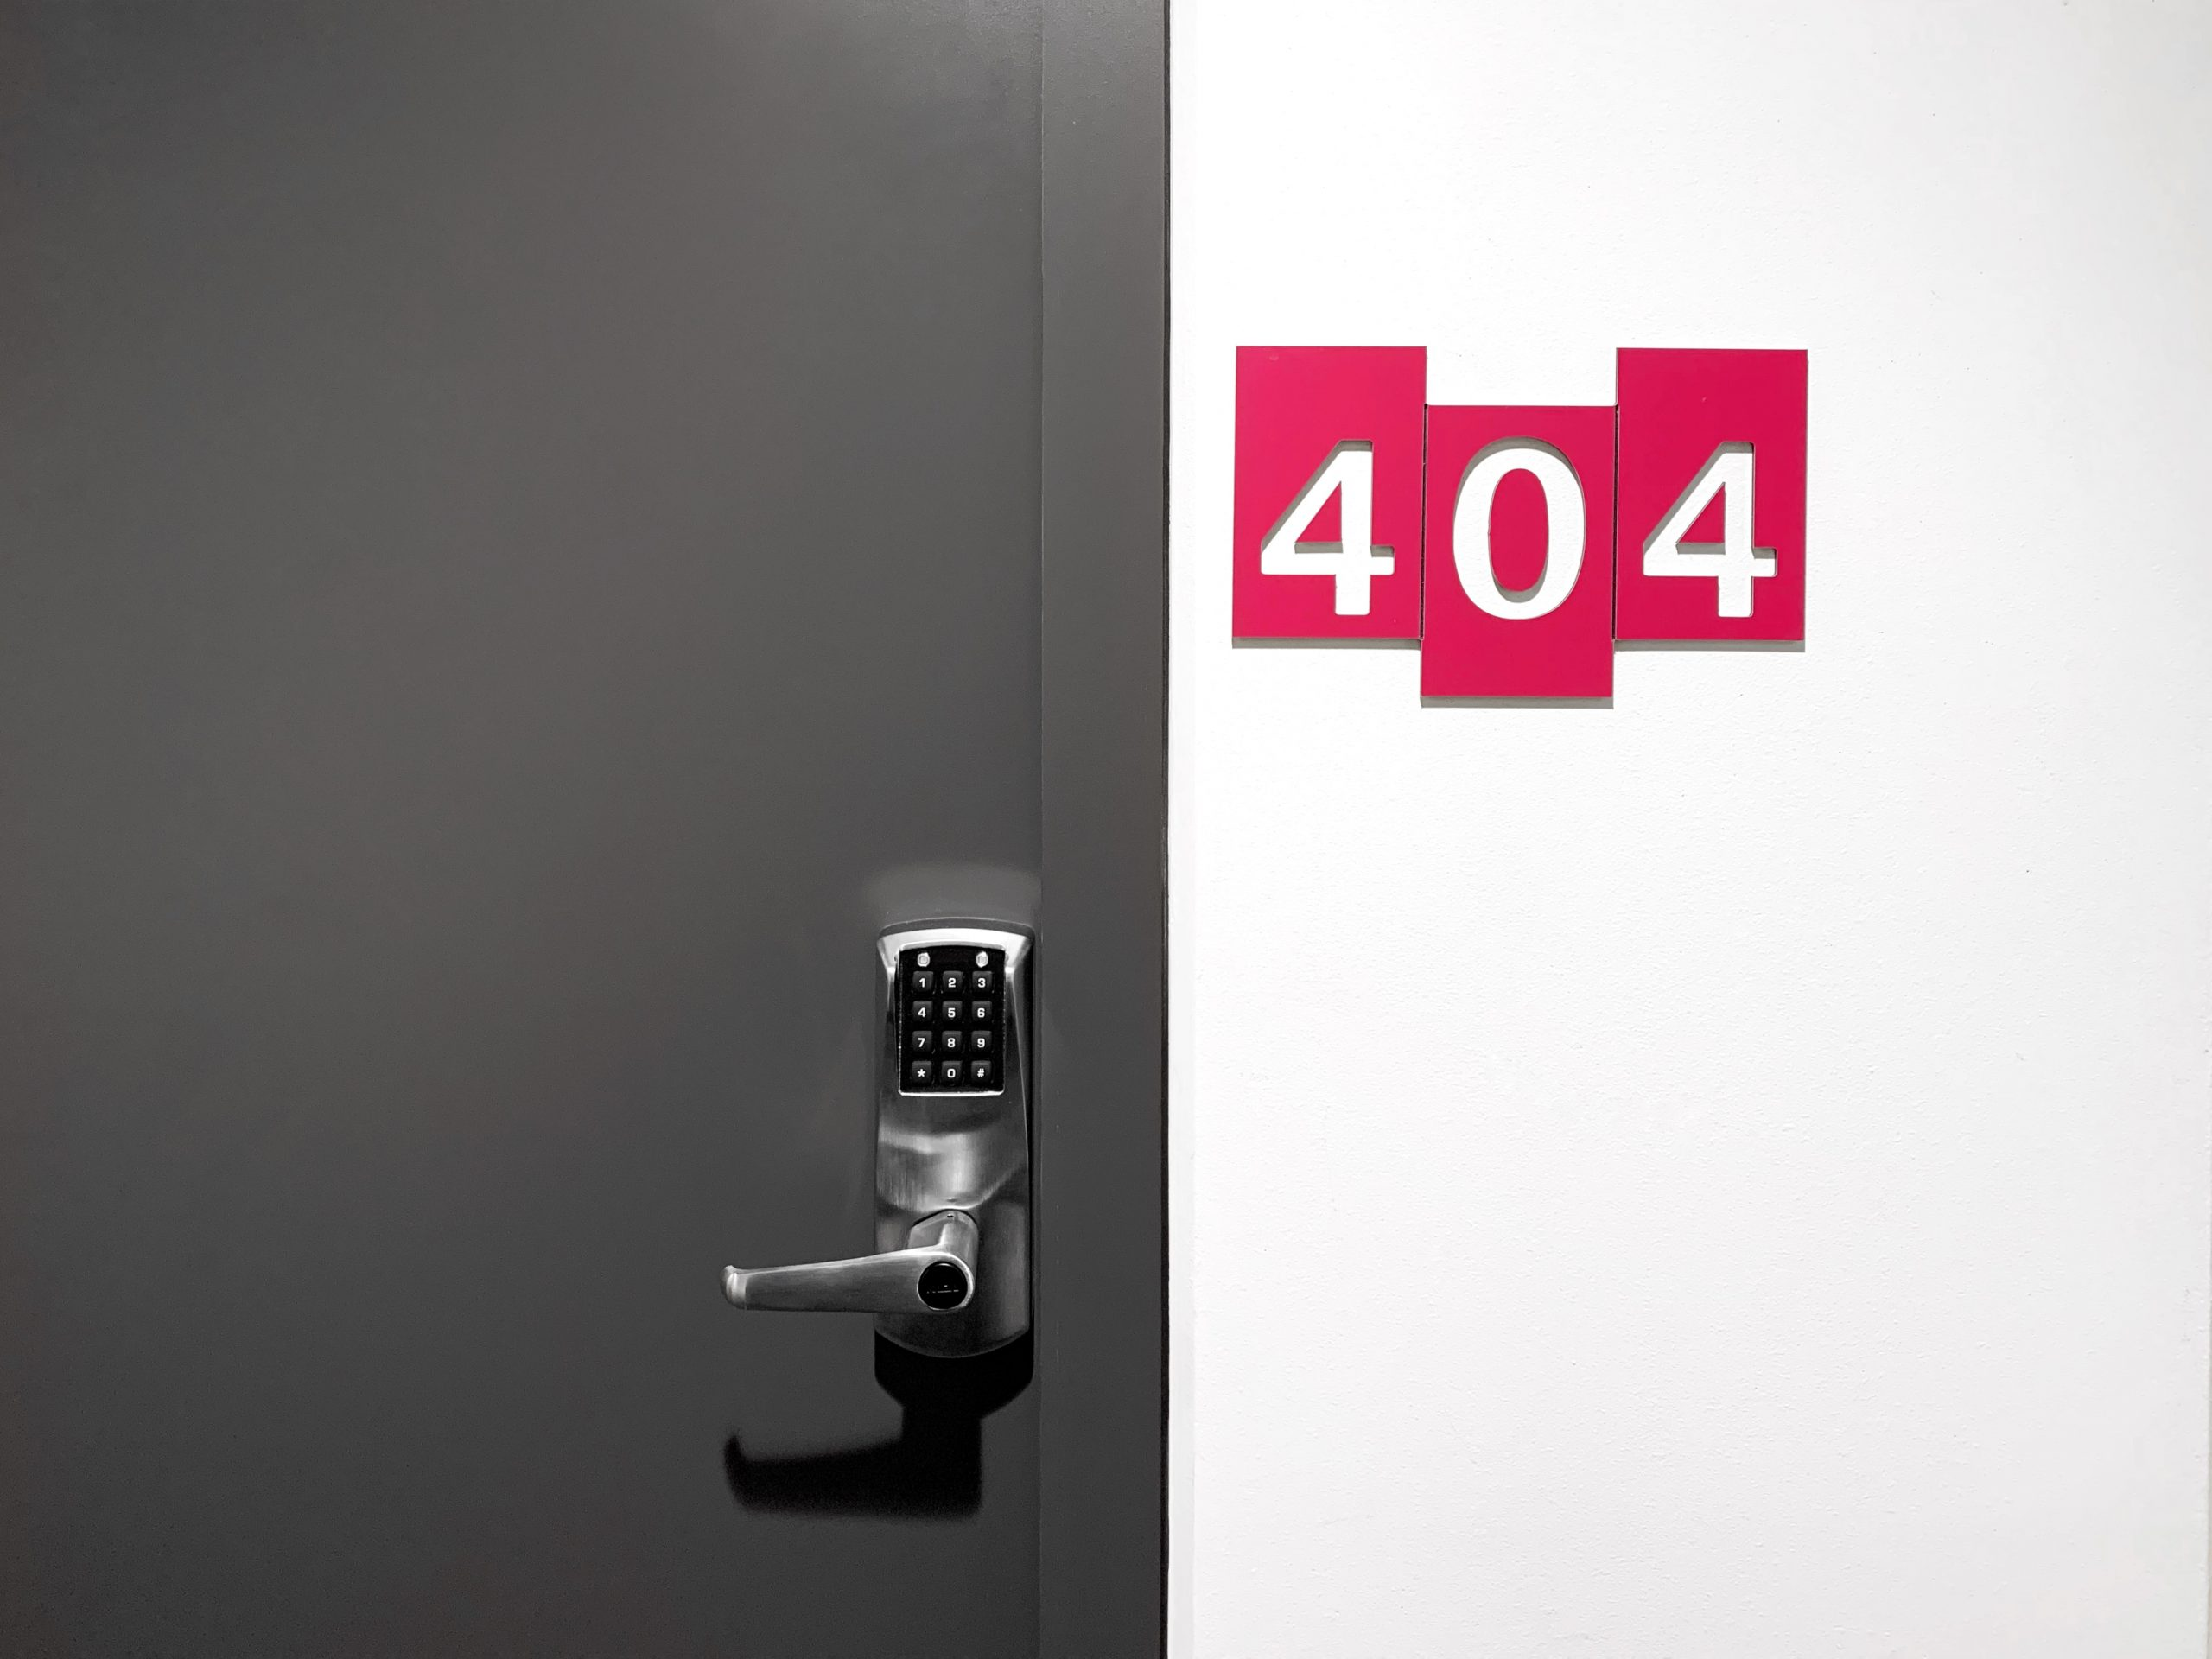 Door with 404 sign on the wall